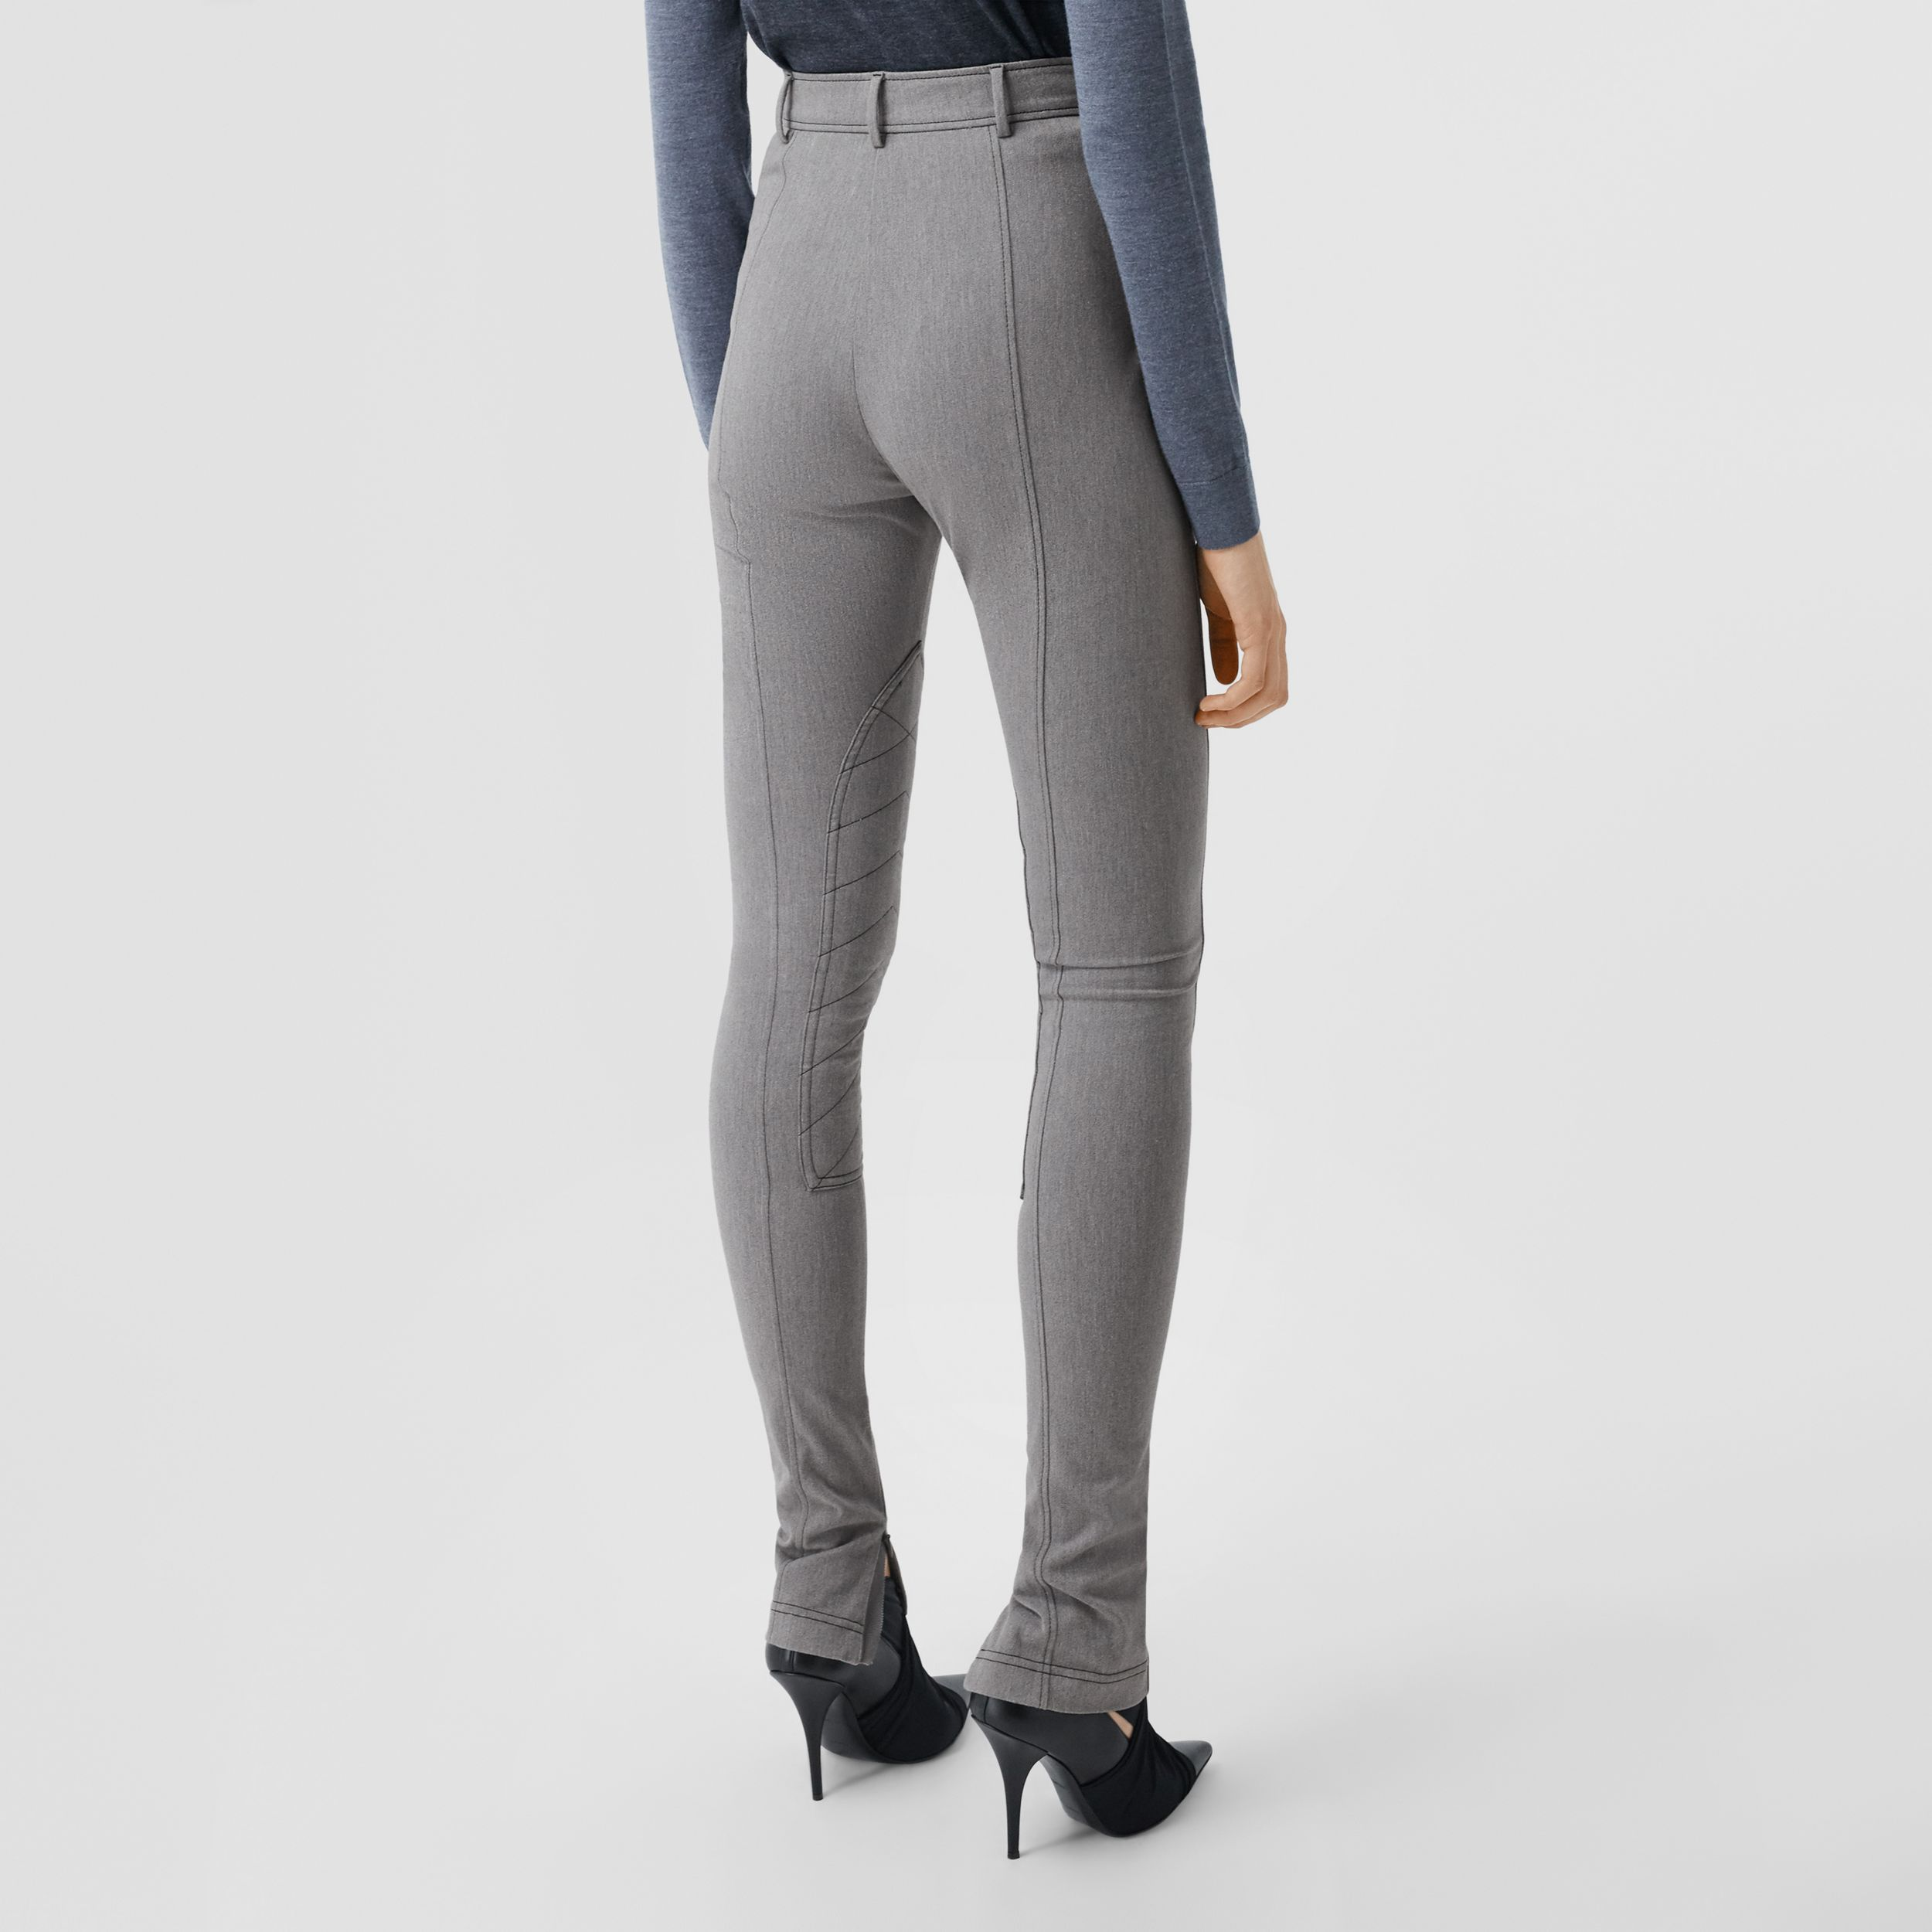 Zip Detail Stretch Cotton Blend Trousers in Grey Melange - Women | Burberry - 3